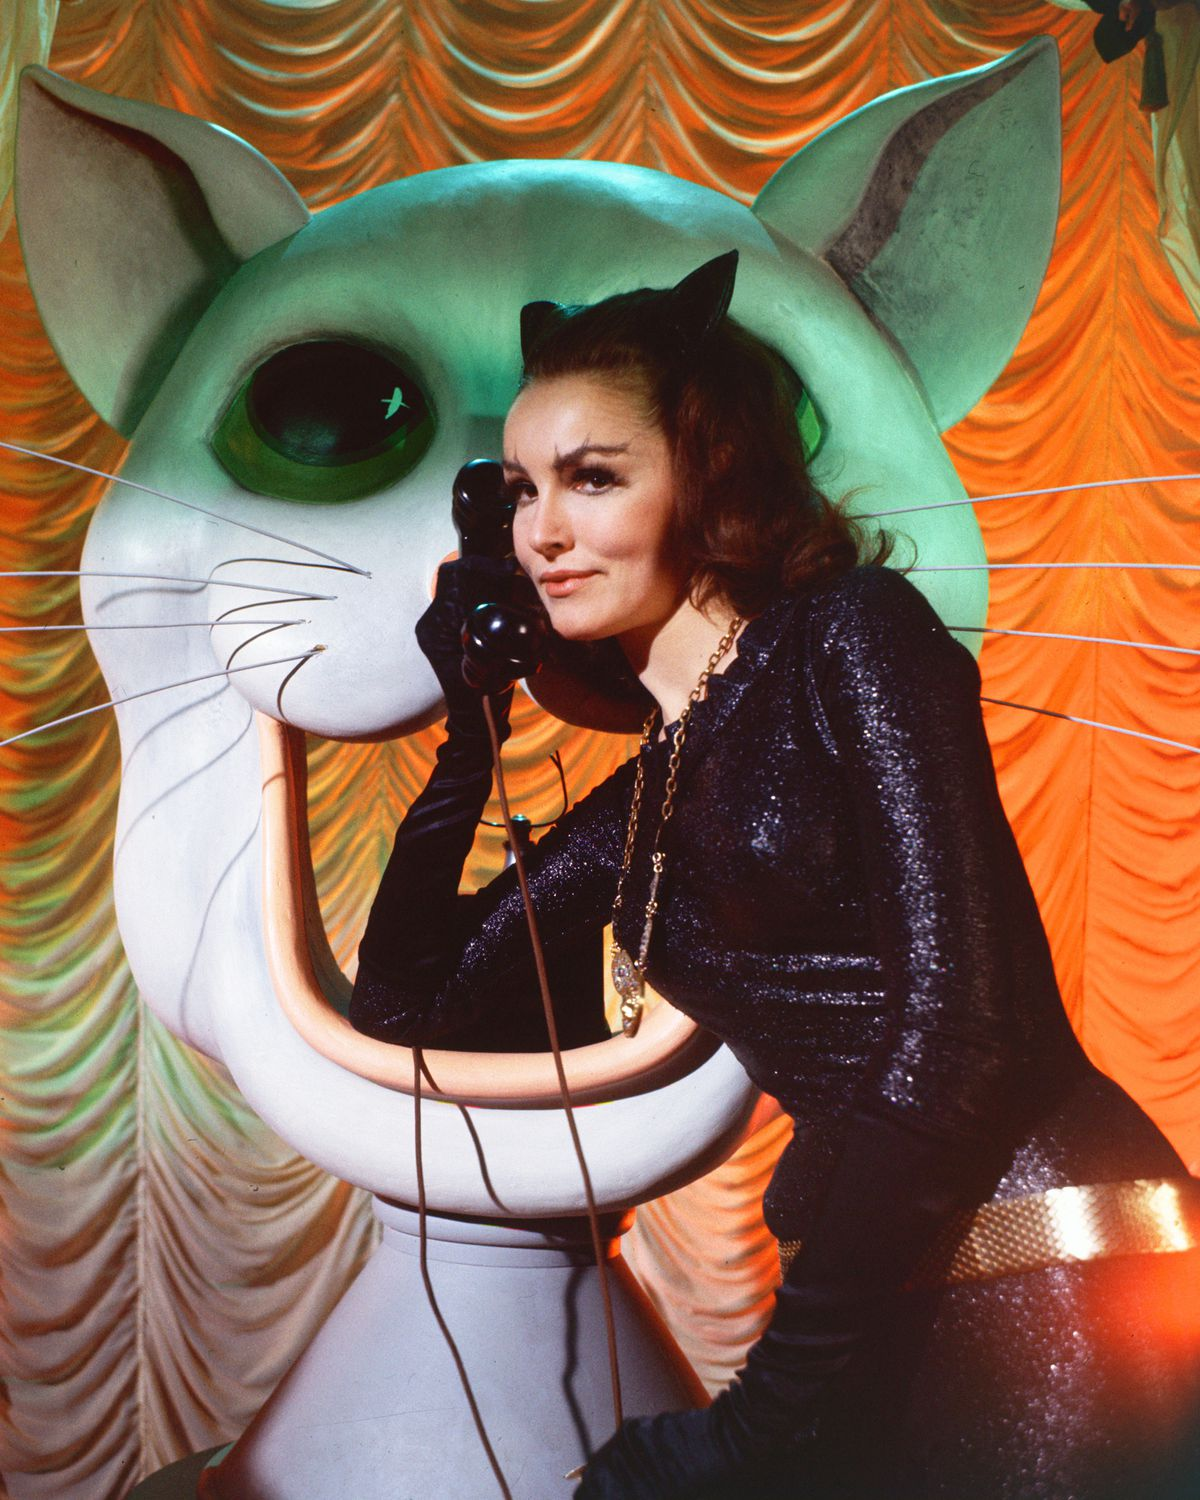 Julie Newmar as Catwoman in 1966